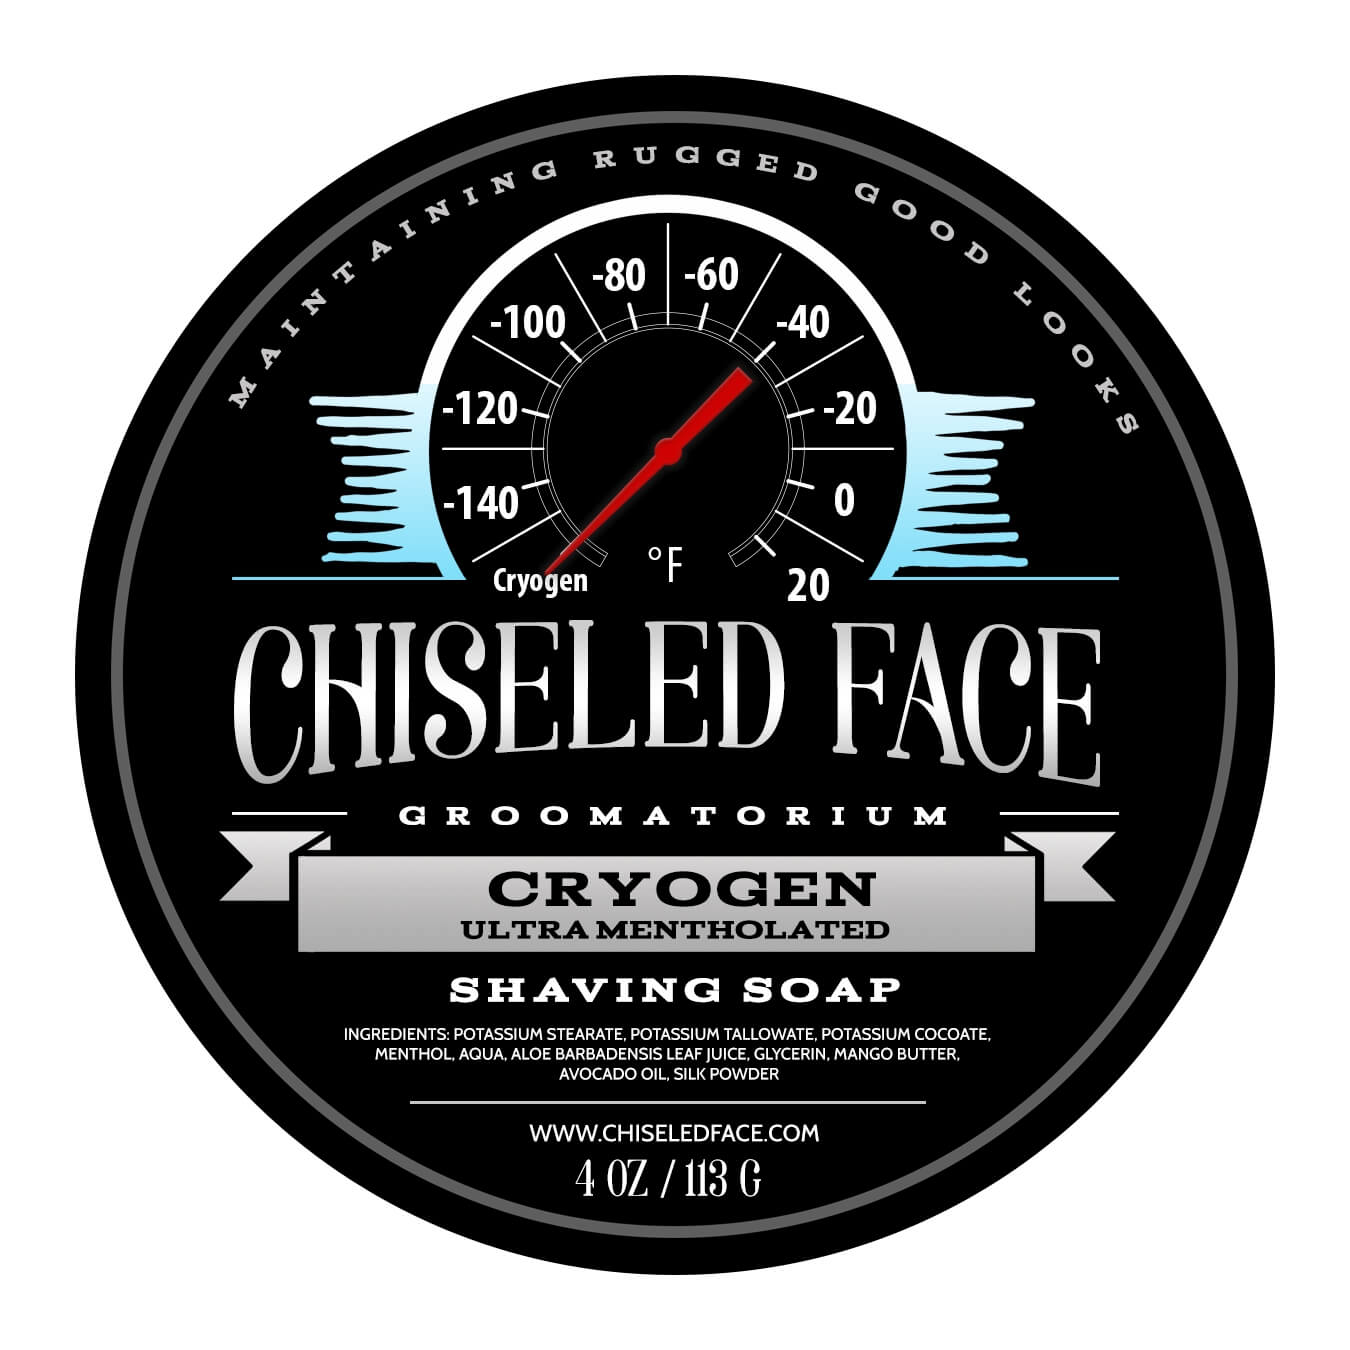 Chiseled Face – Cryogen – Shaving Soap